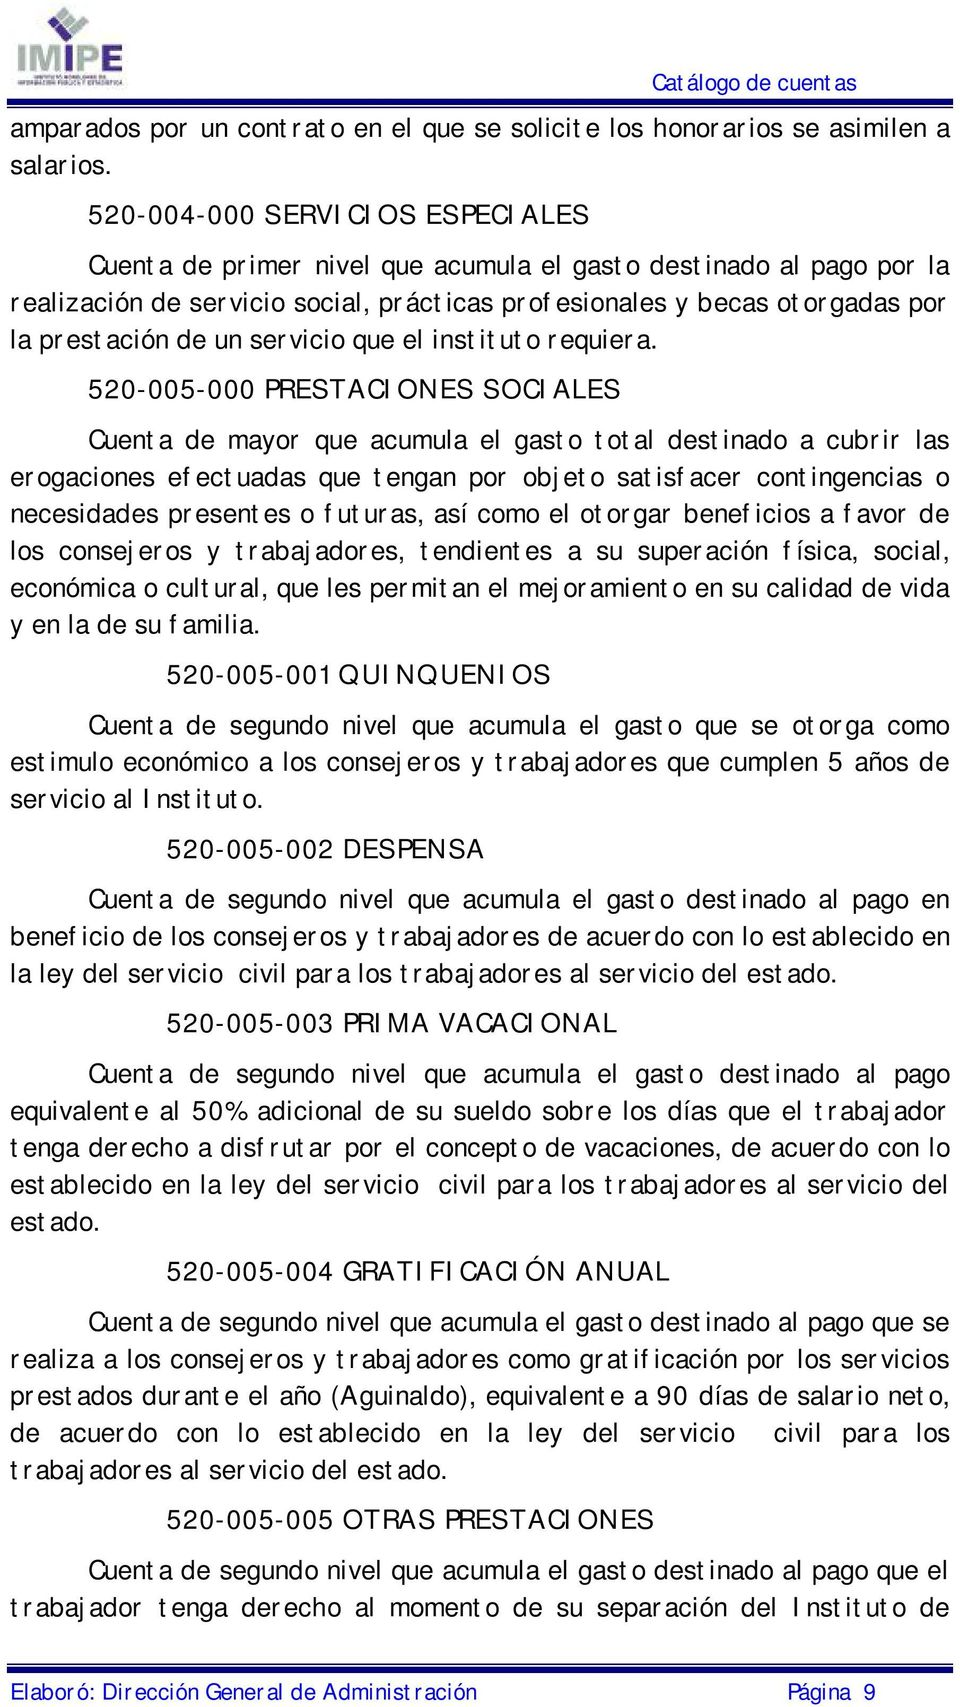 servicio que el instituto requiera.